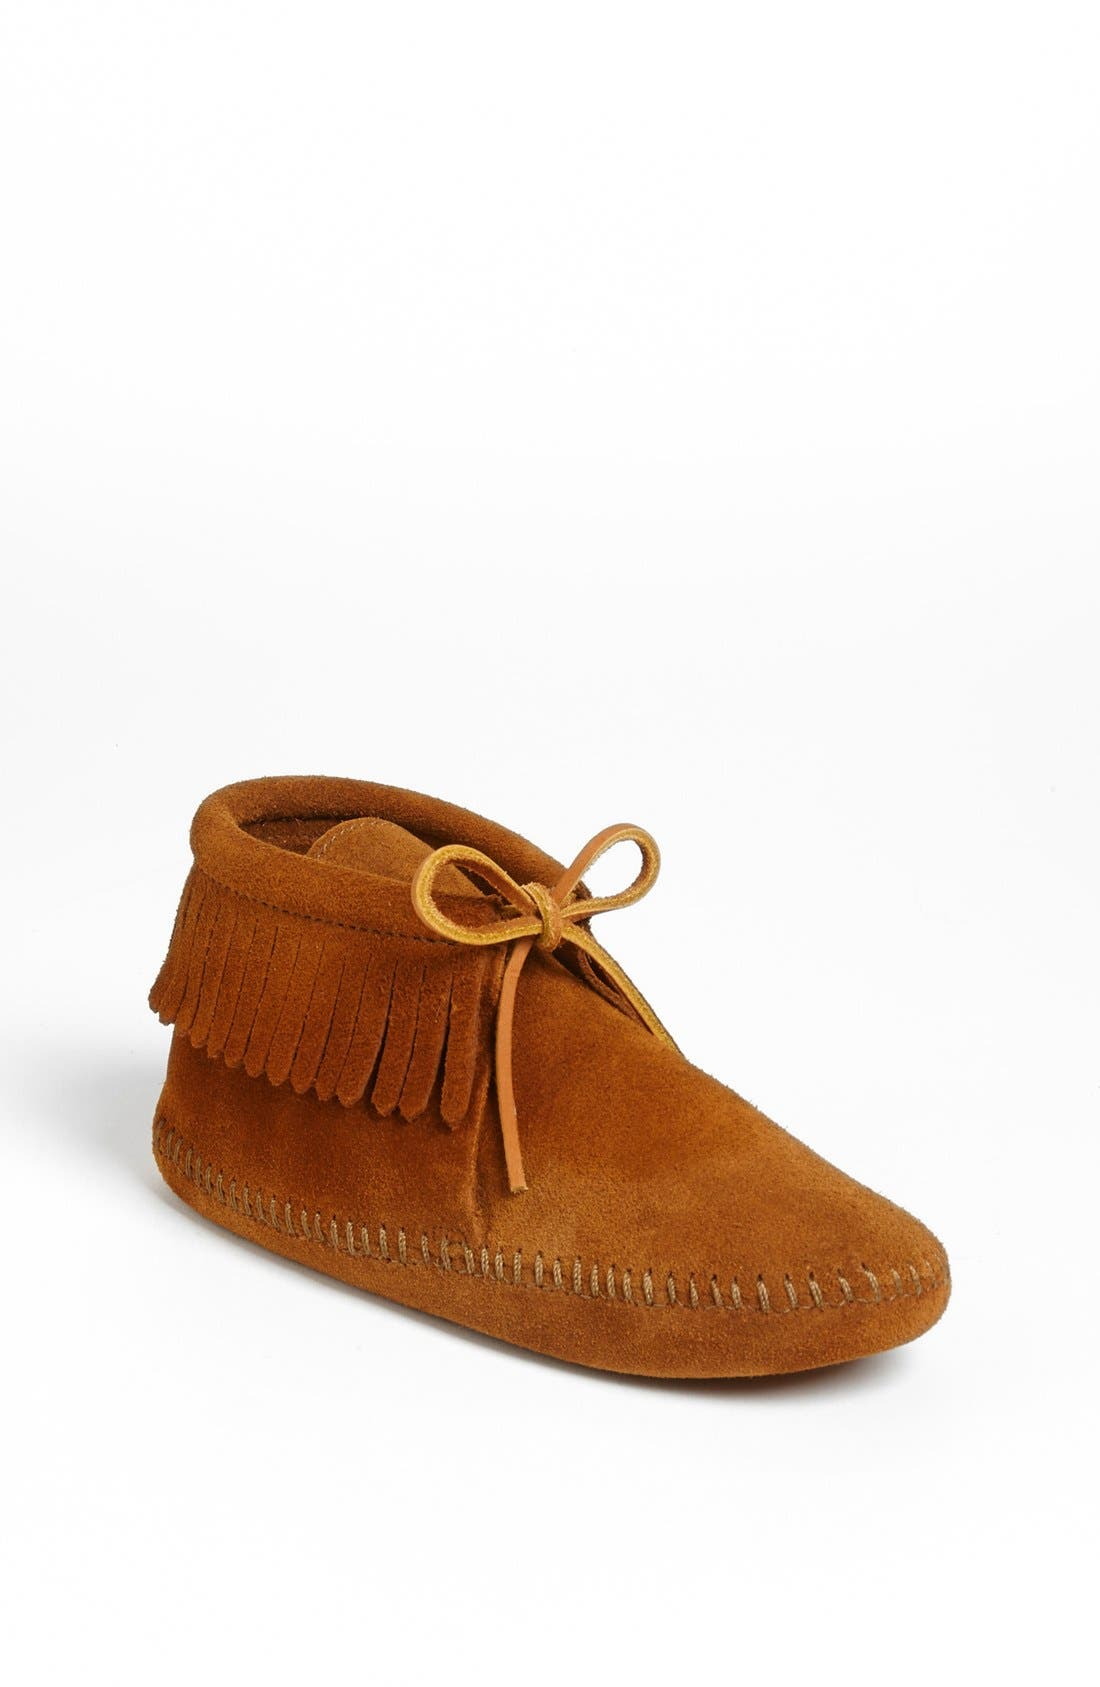 MINNETONKA 'Classic Fringe' Boot, Main, color, BROWN